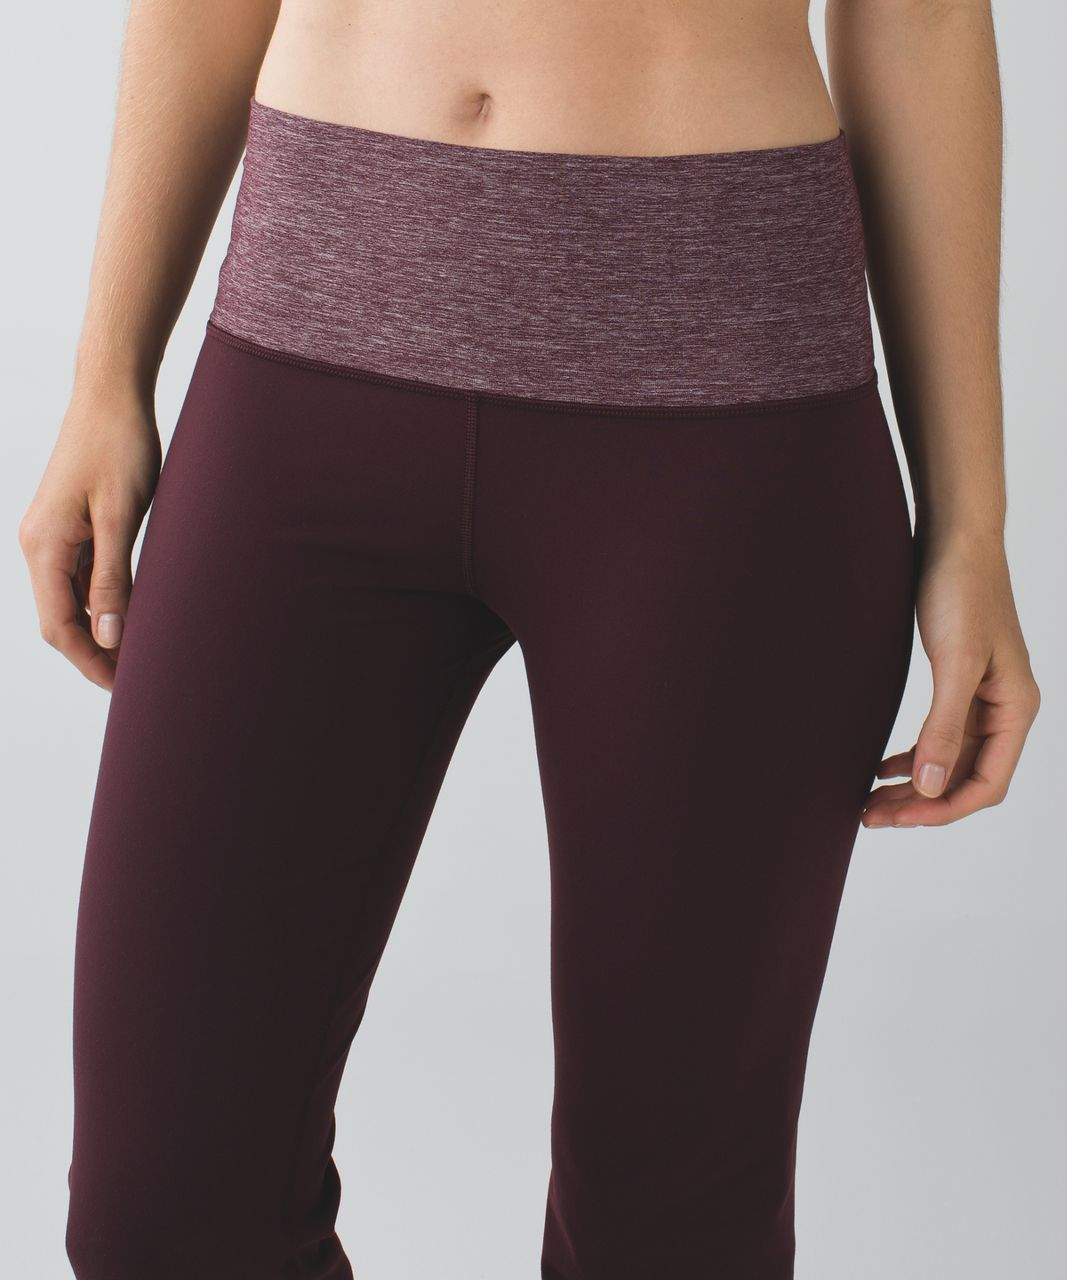 Lululemon Groove Pant III (Tall) - Bordeaux Drama / Heathered Bordeaux Drama